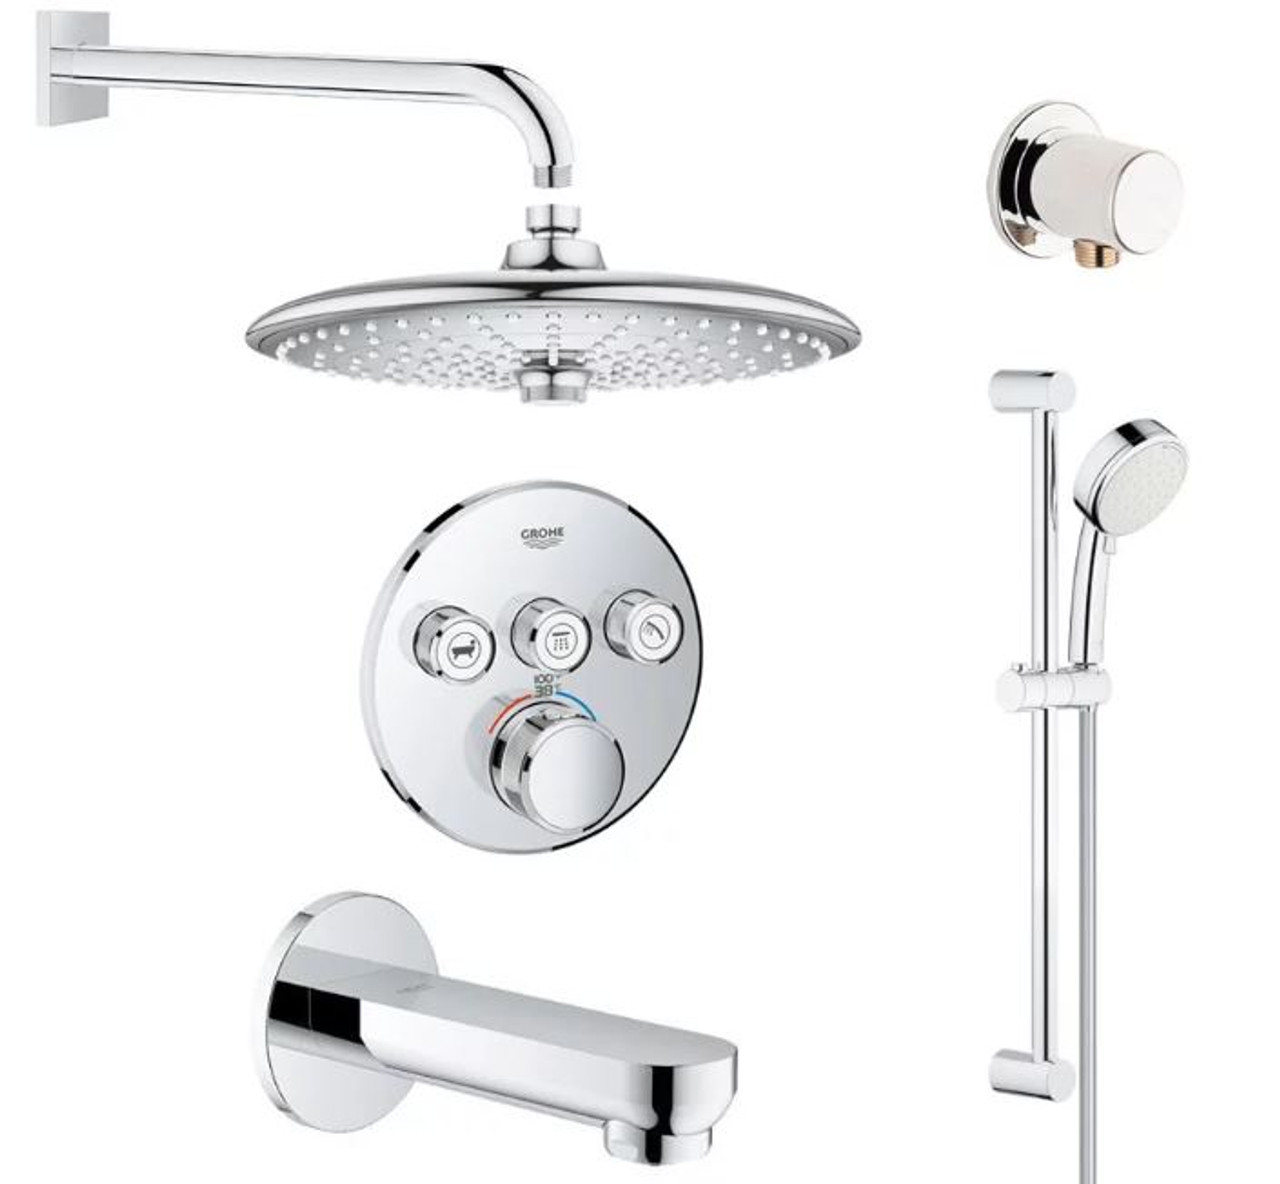 Grohe Smartcontrol Shower System With Tub Spout Hand Shower Slide Bar Hose Shower Head Shower Arm Wall Supply Elbow Valve Trim And Rough In